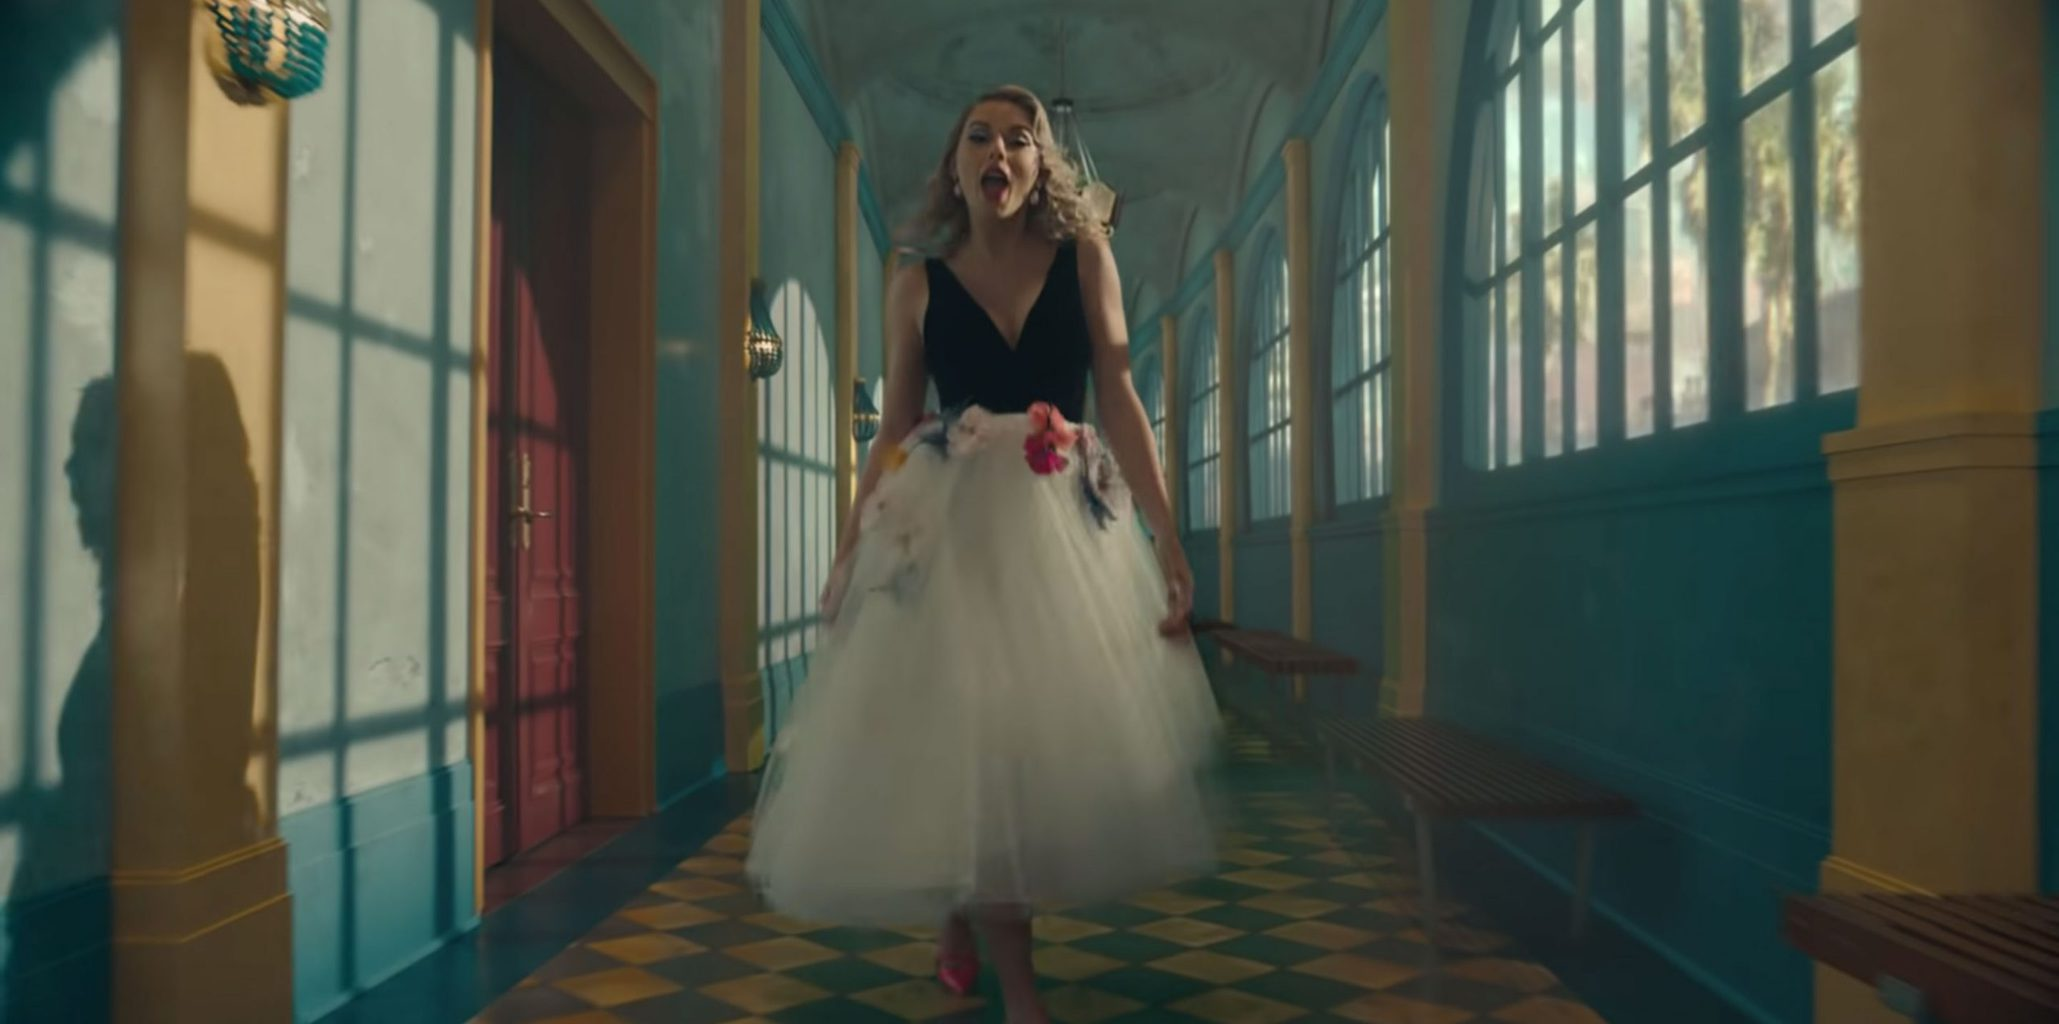 Taylor Swift in the Me music video wearing a tulle skirt and black top